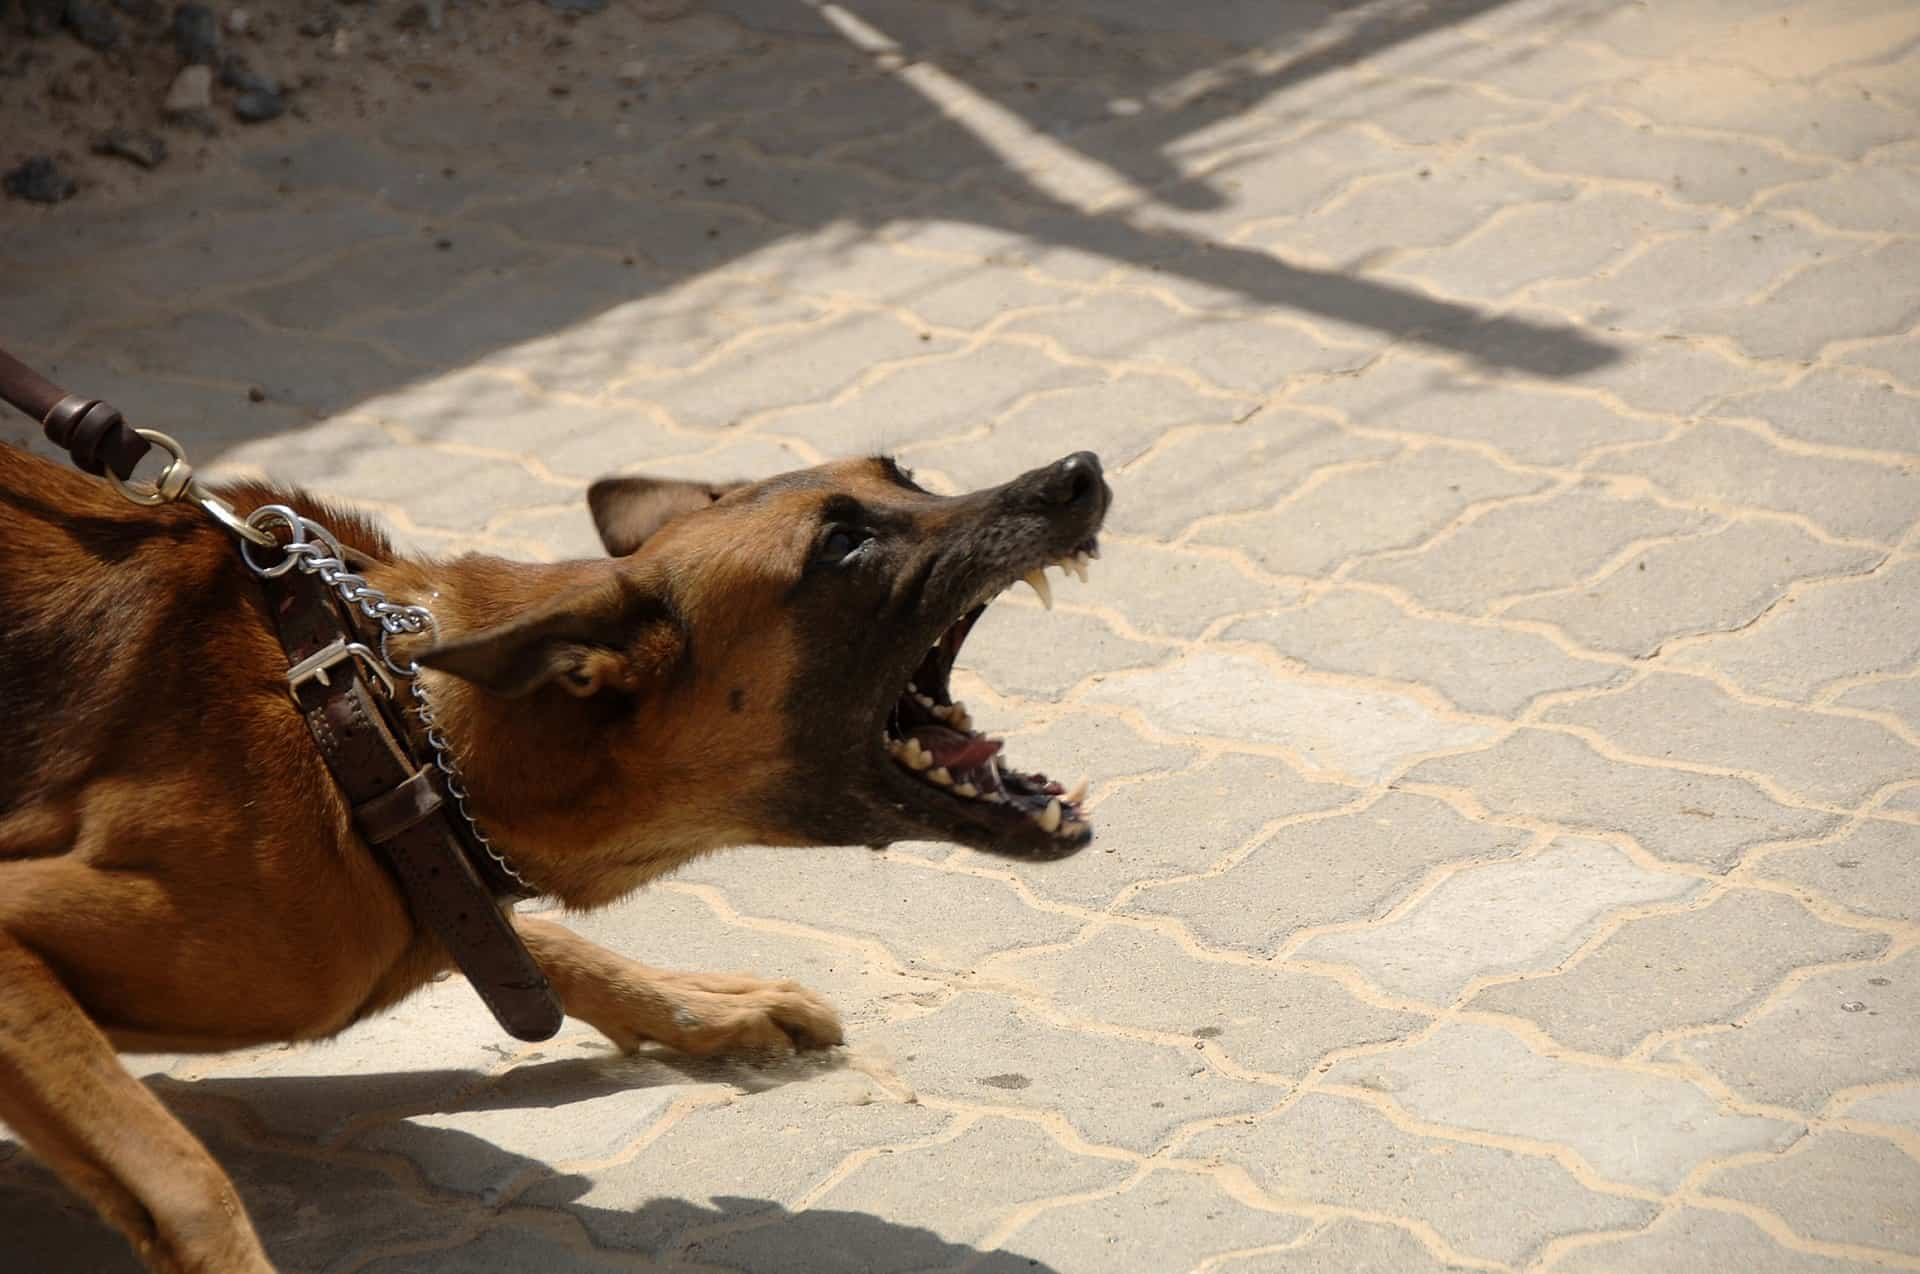 Based on statistics of dog attacks, the Pitbull is considered to be the most dangerous dog breed in the world.